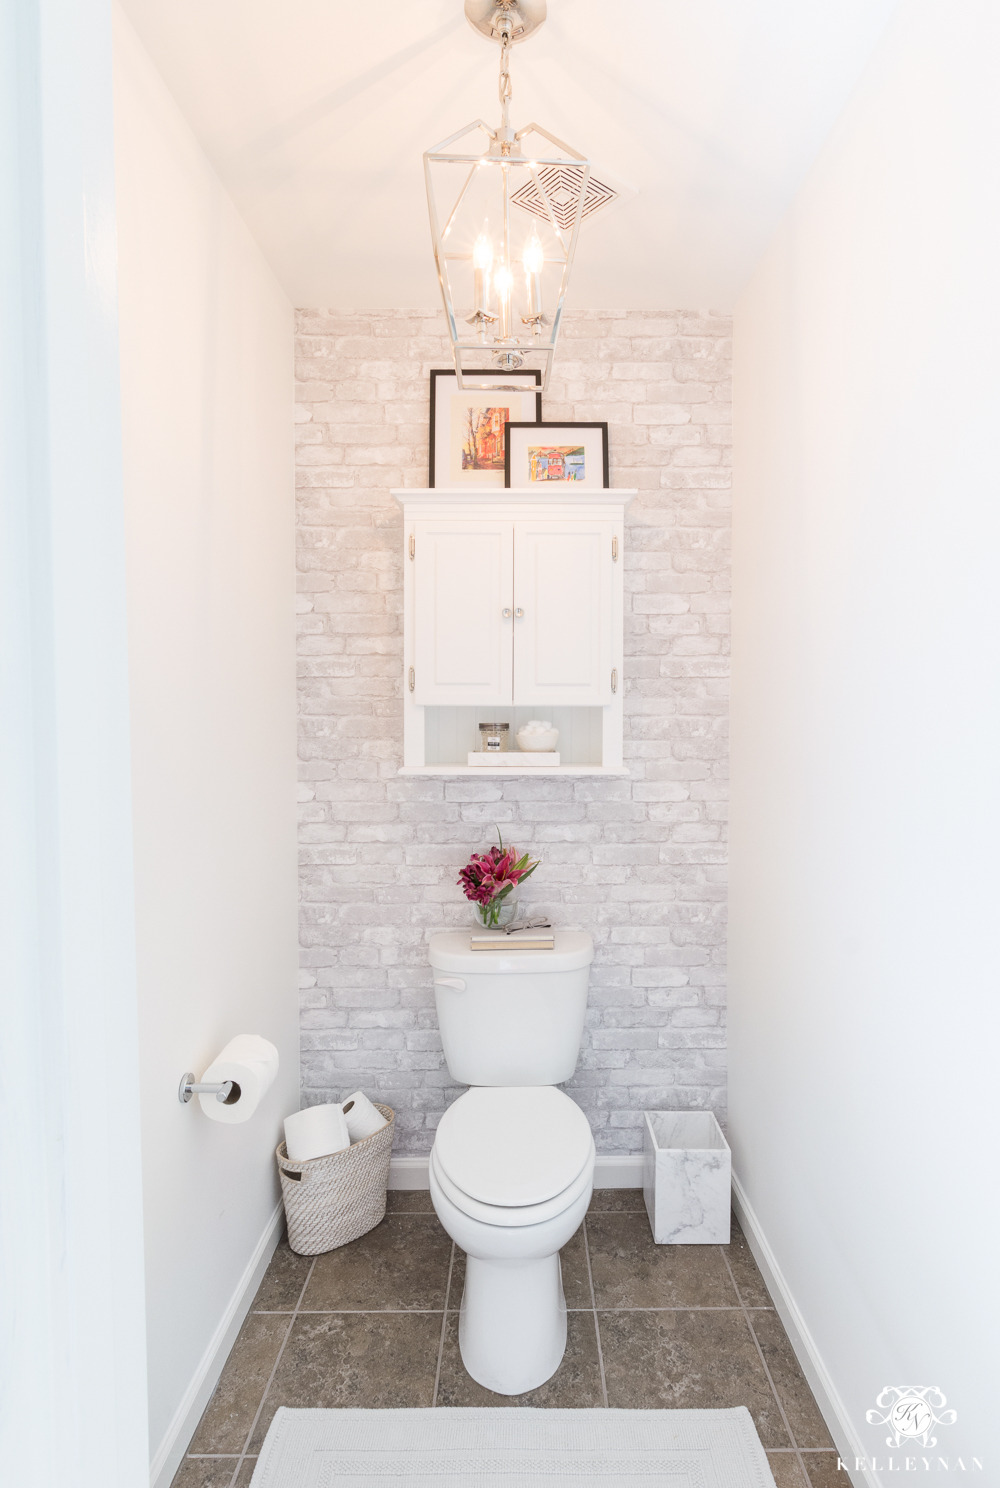 Decorating Ideas for A Bathroom New toilet Room Makeover Reveal and Clever Bathroom Storage